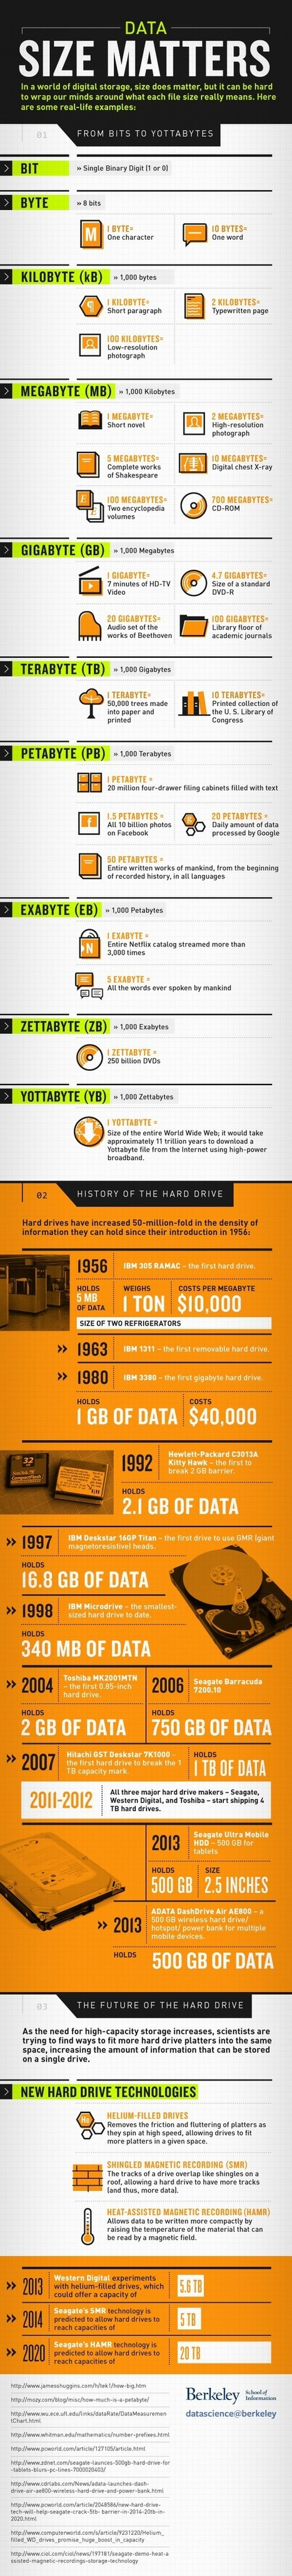 Data Size Matters [Infographic] | Big Data | Scoop.it